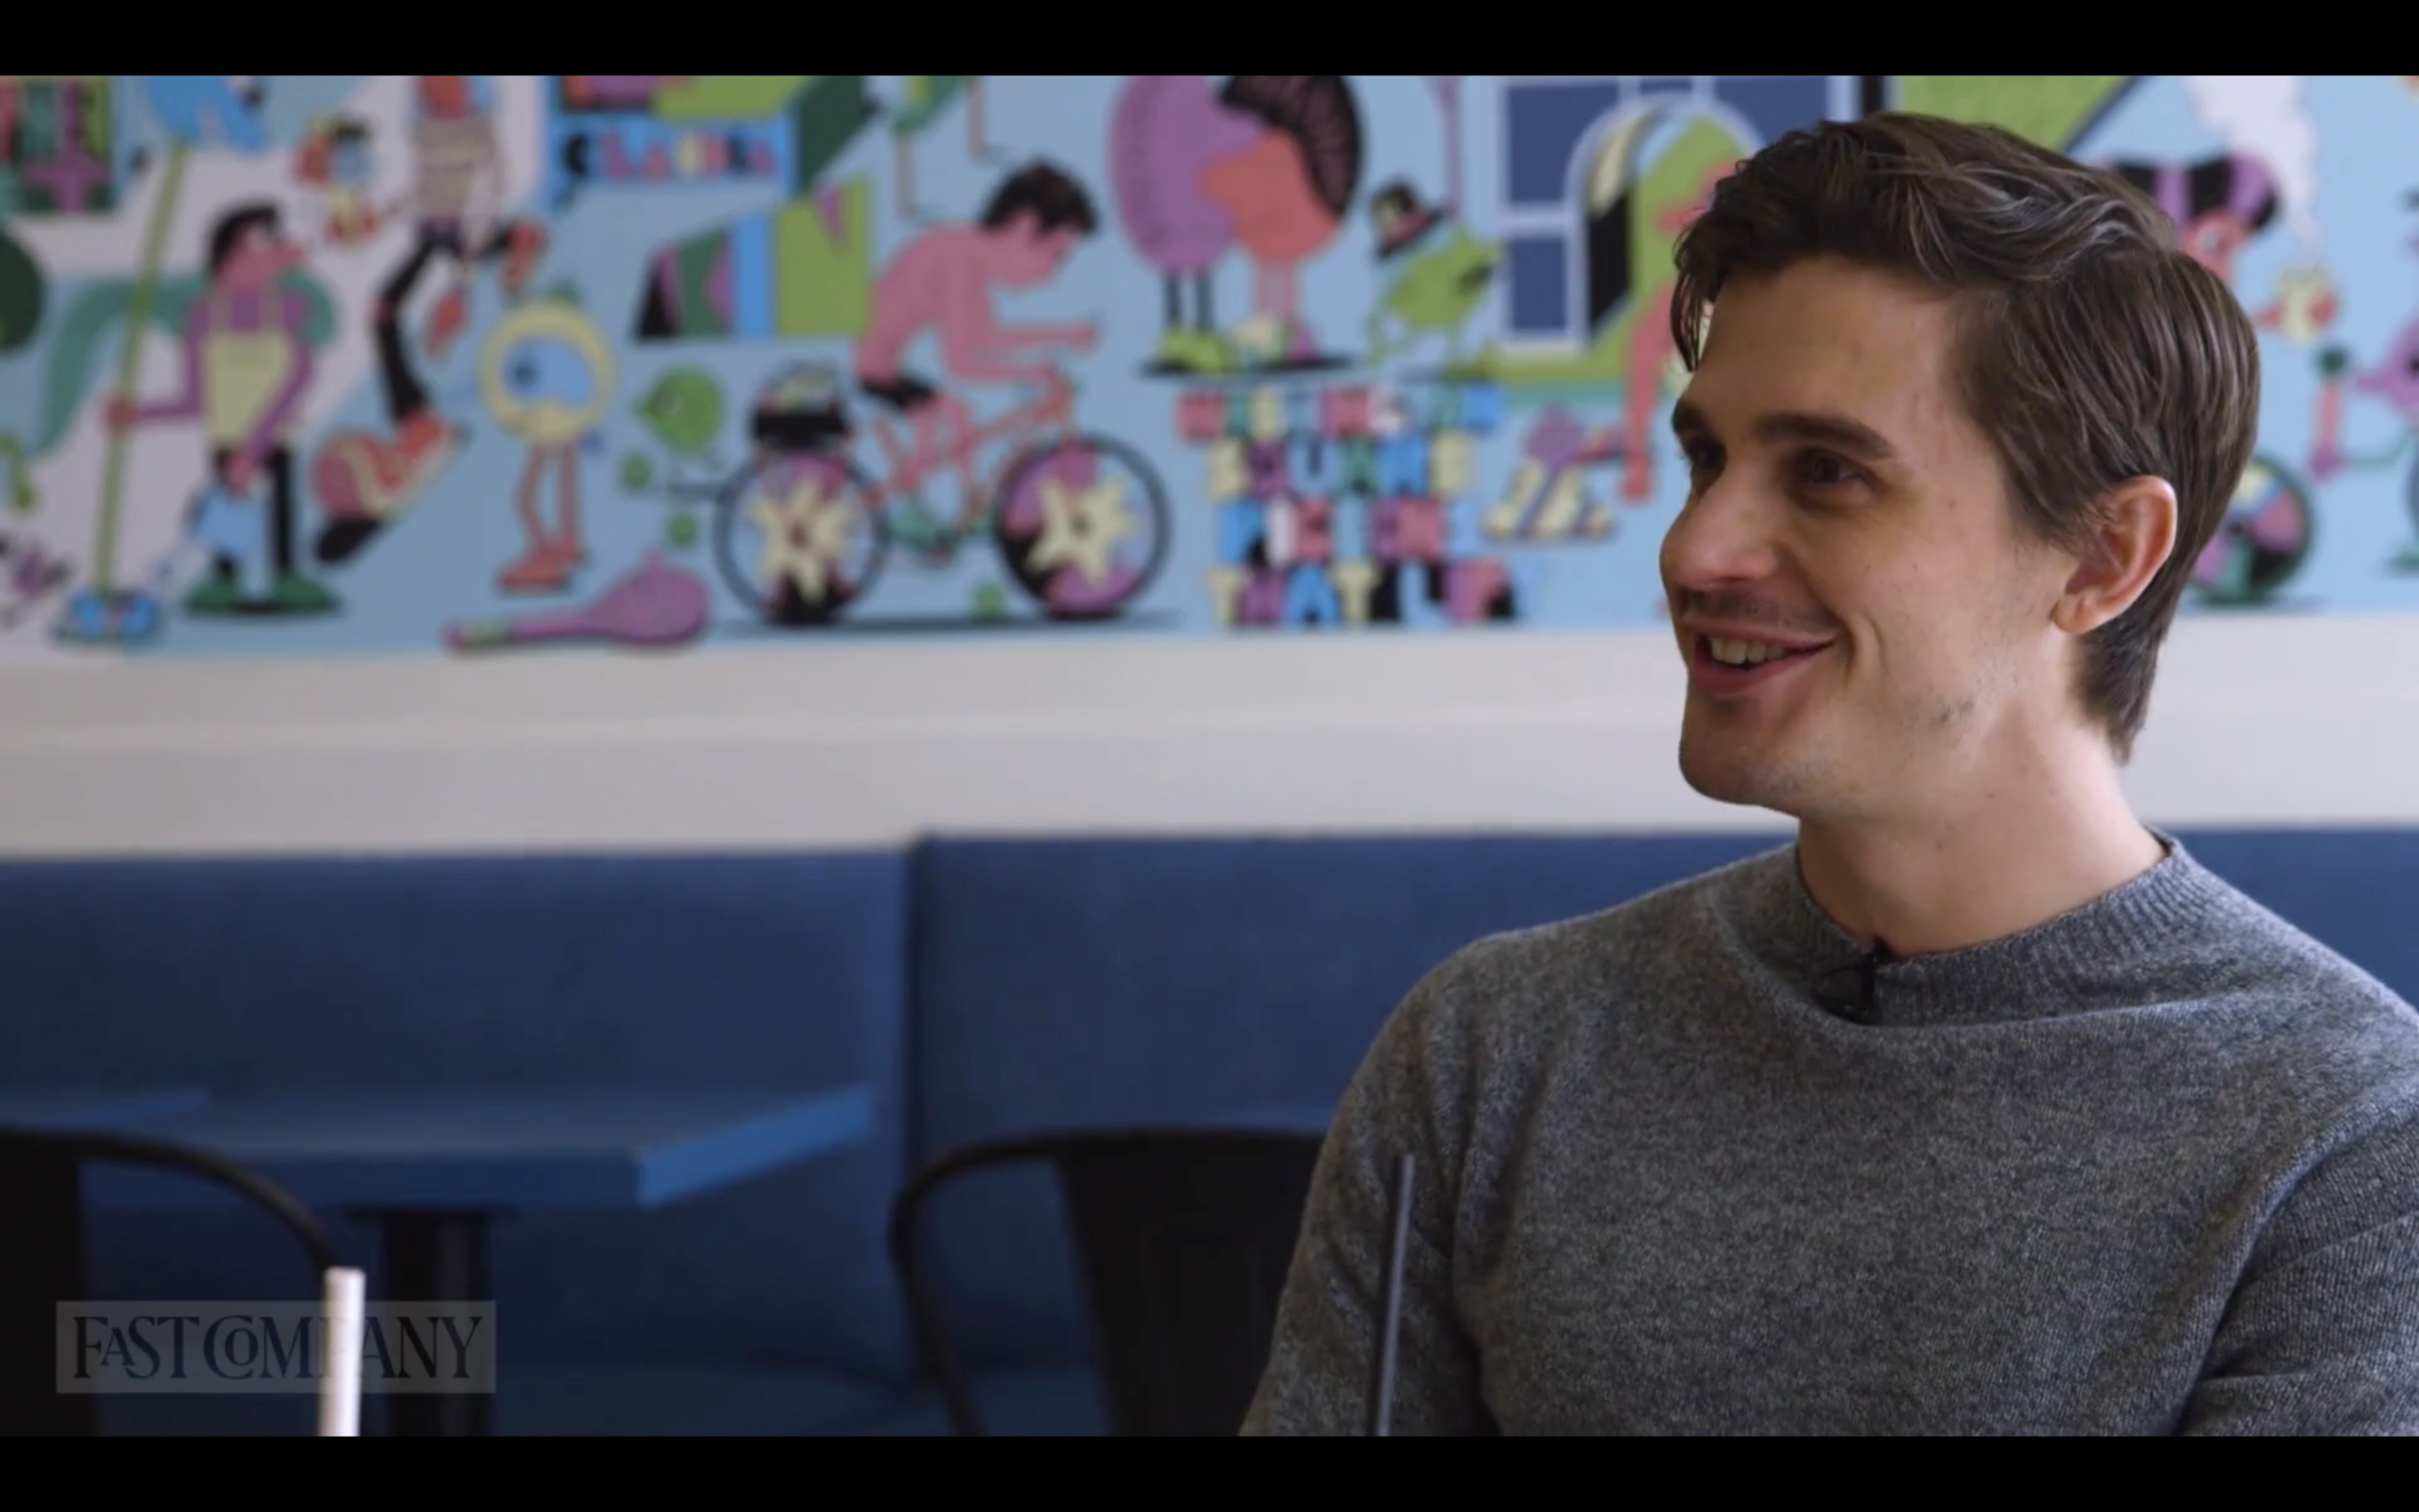 Antoni Porowski on overcoming fear and enjoying success (yogurt guacamole and all) - - Fast Company